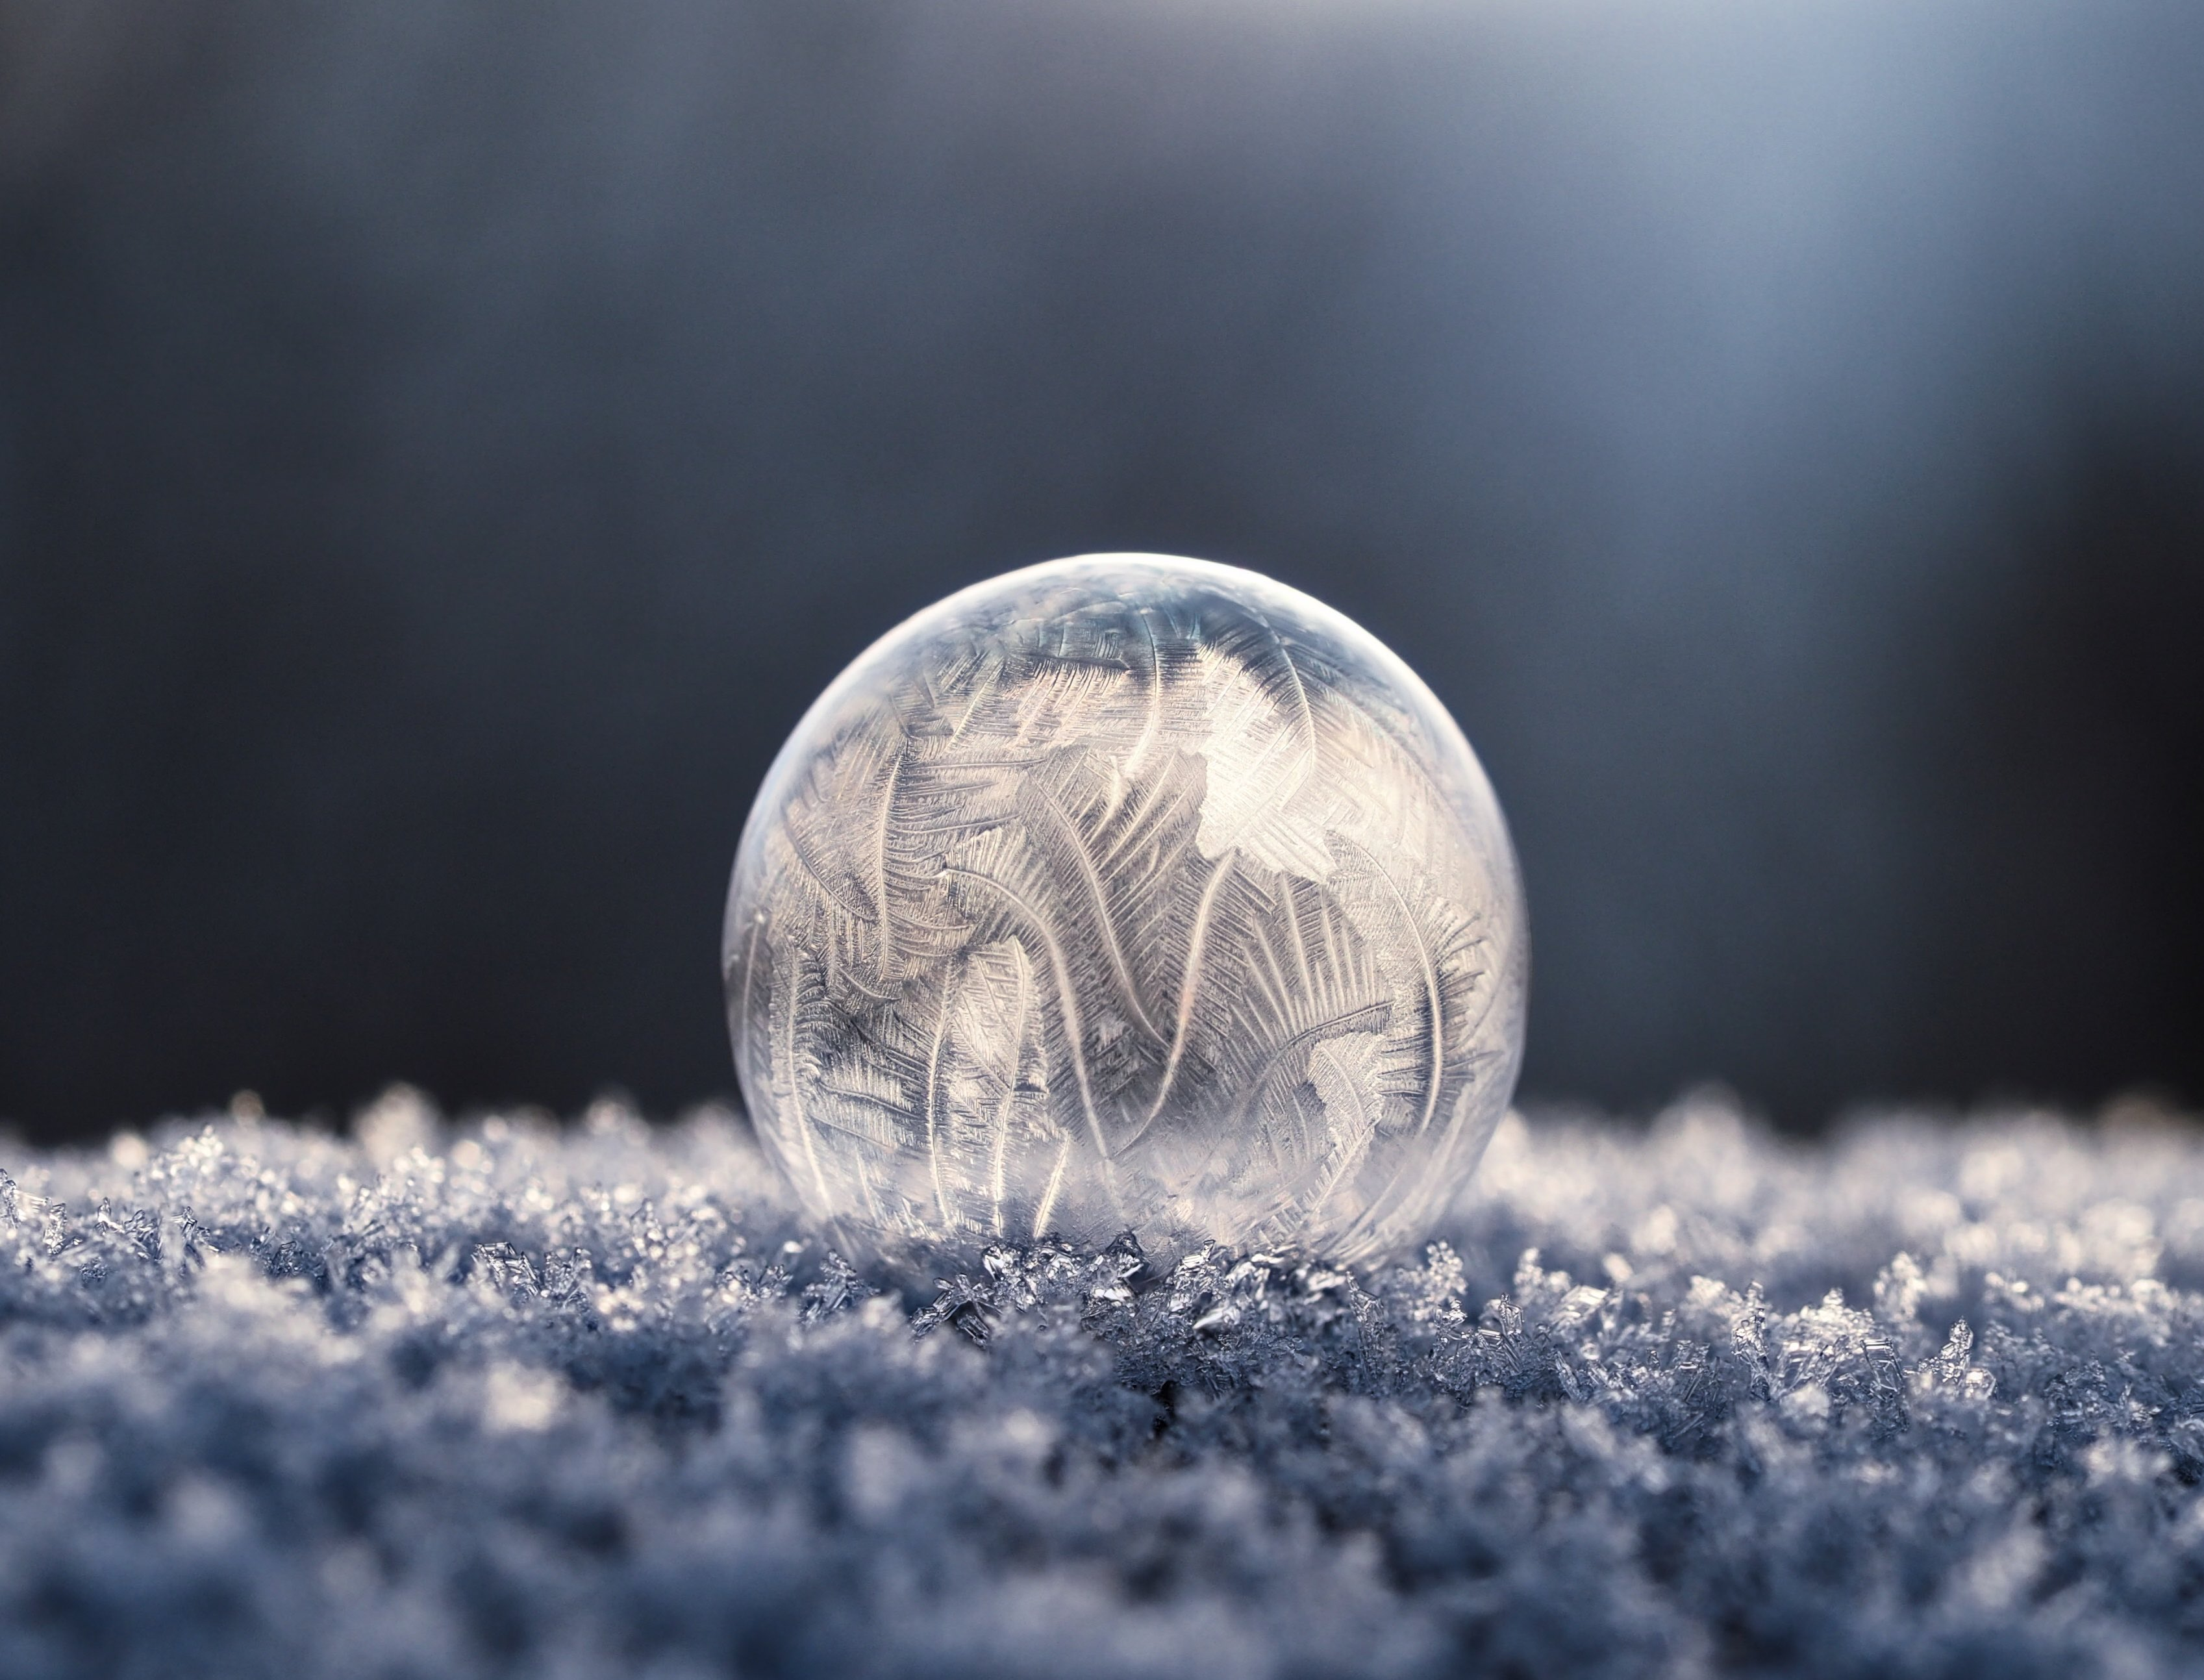 Perfect sphere made of ice with interesting texture